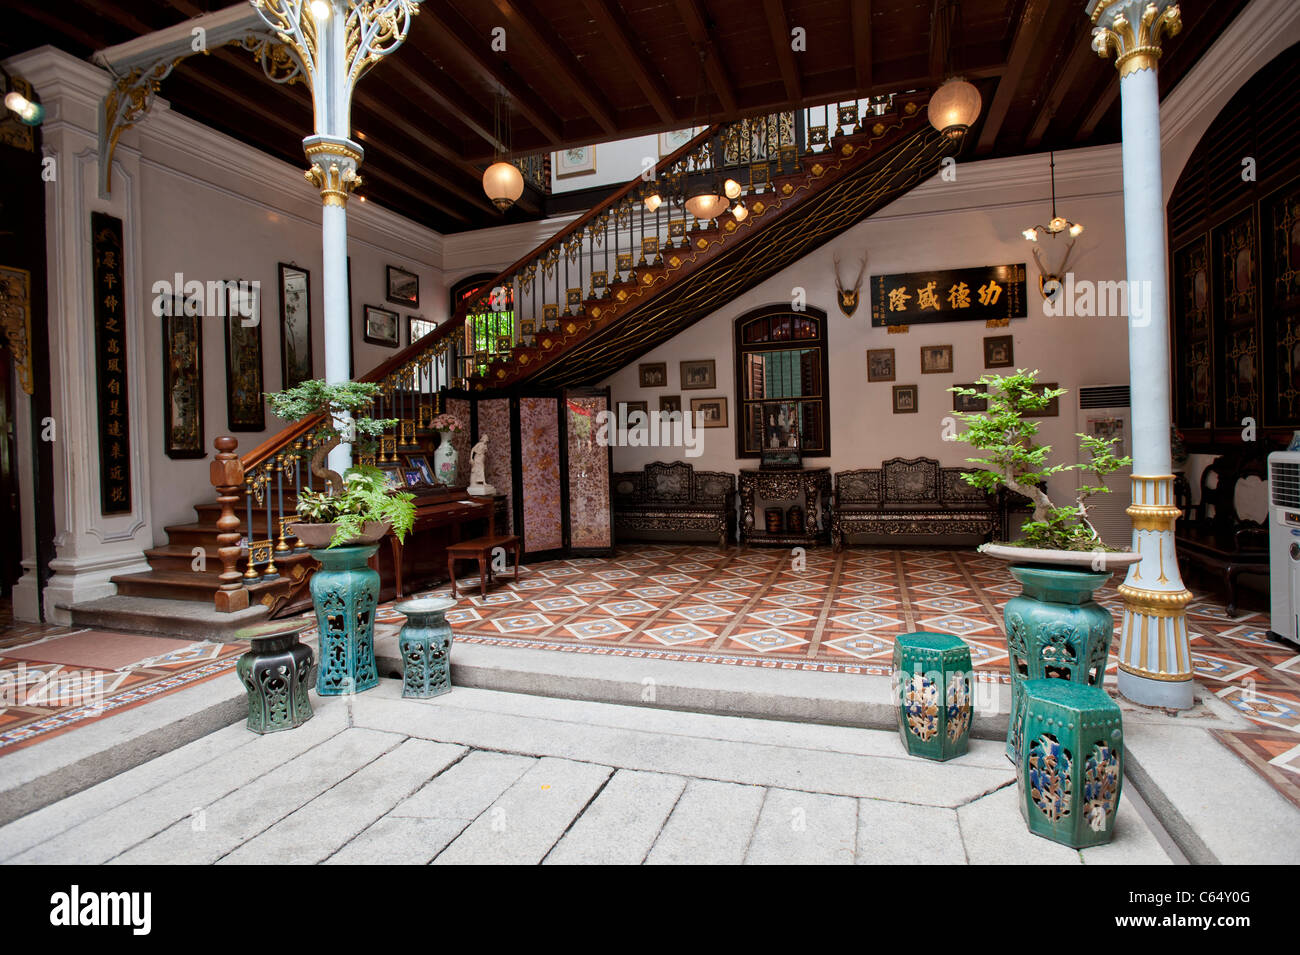 Main Entrance Hall and Staircase in the Peranakan Mansion, George Town, Penang Malaysia - Stock Image